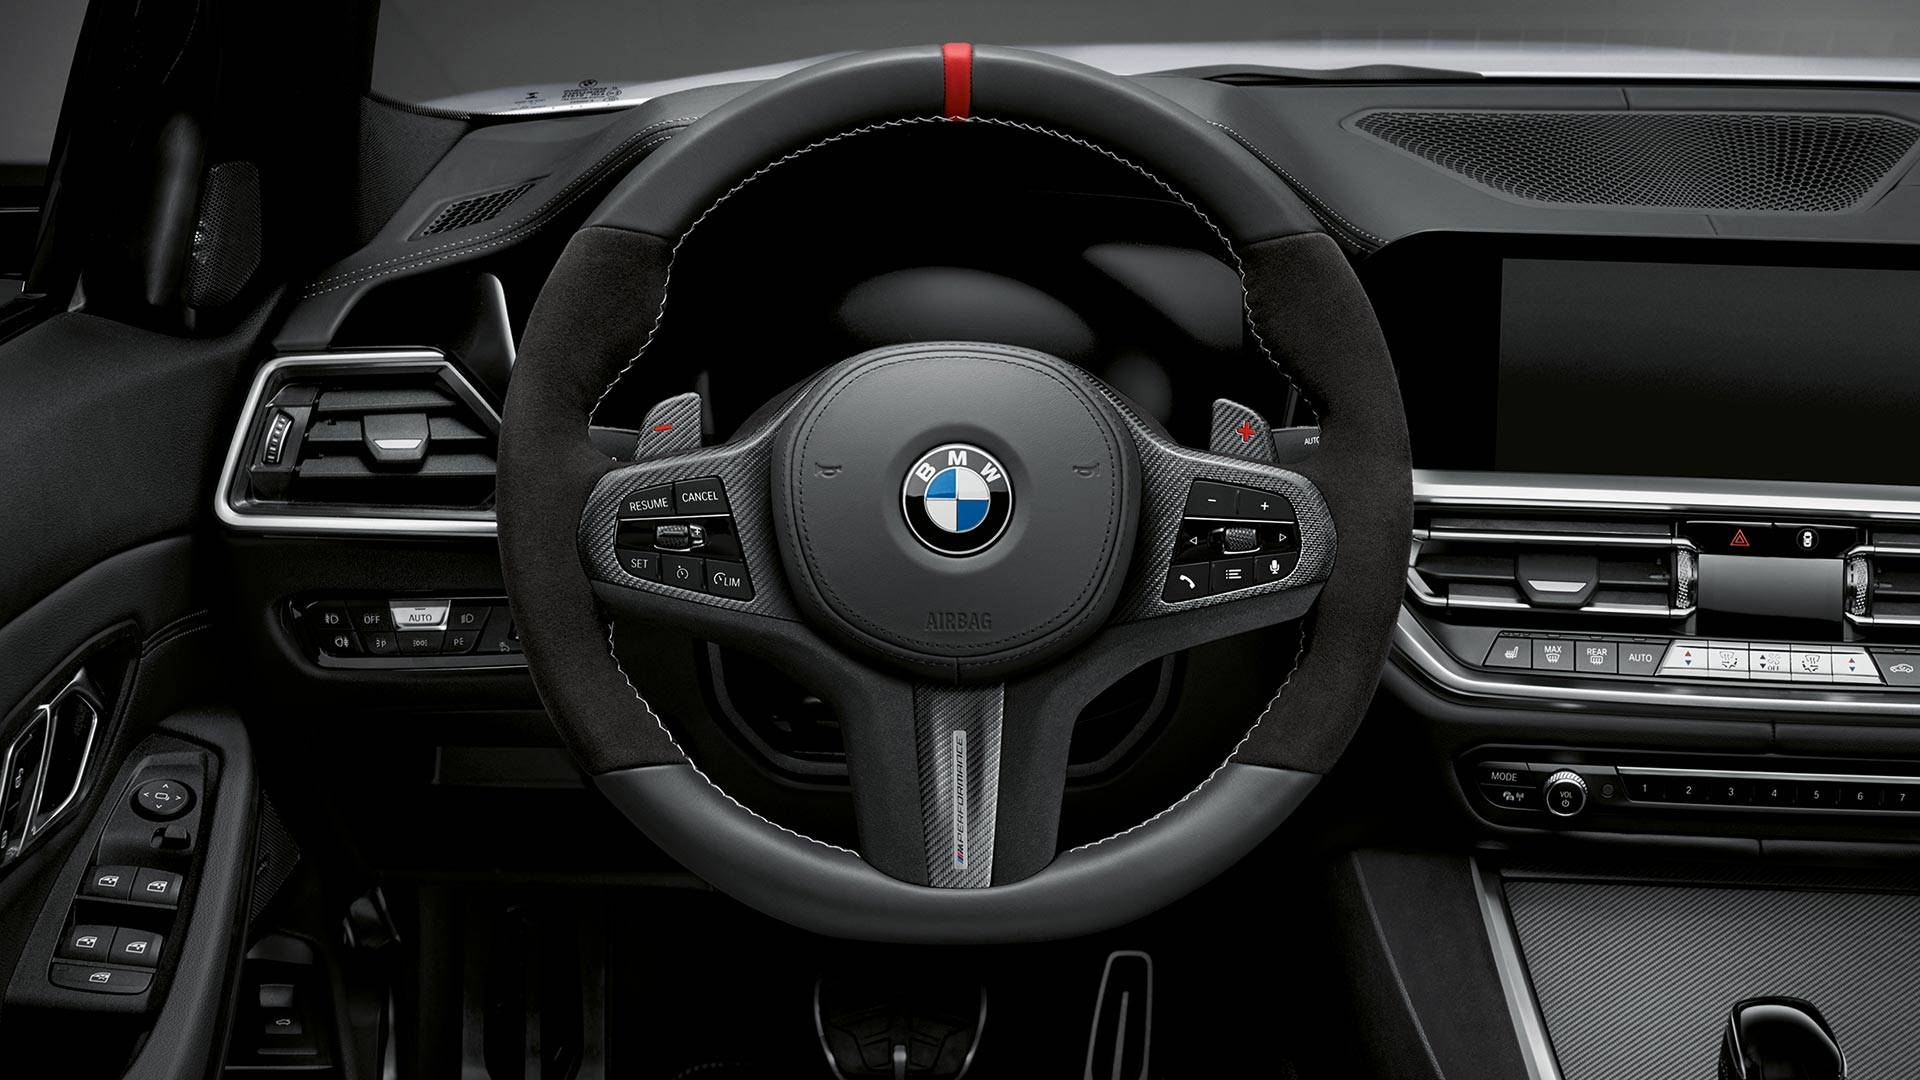 2019-bmw-3-series-m-performance-parts-7.jpg